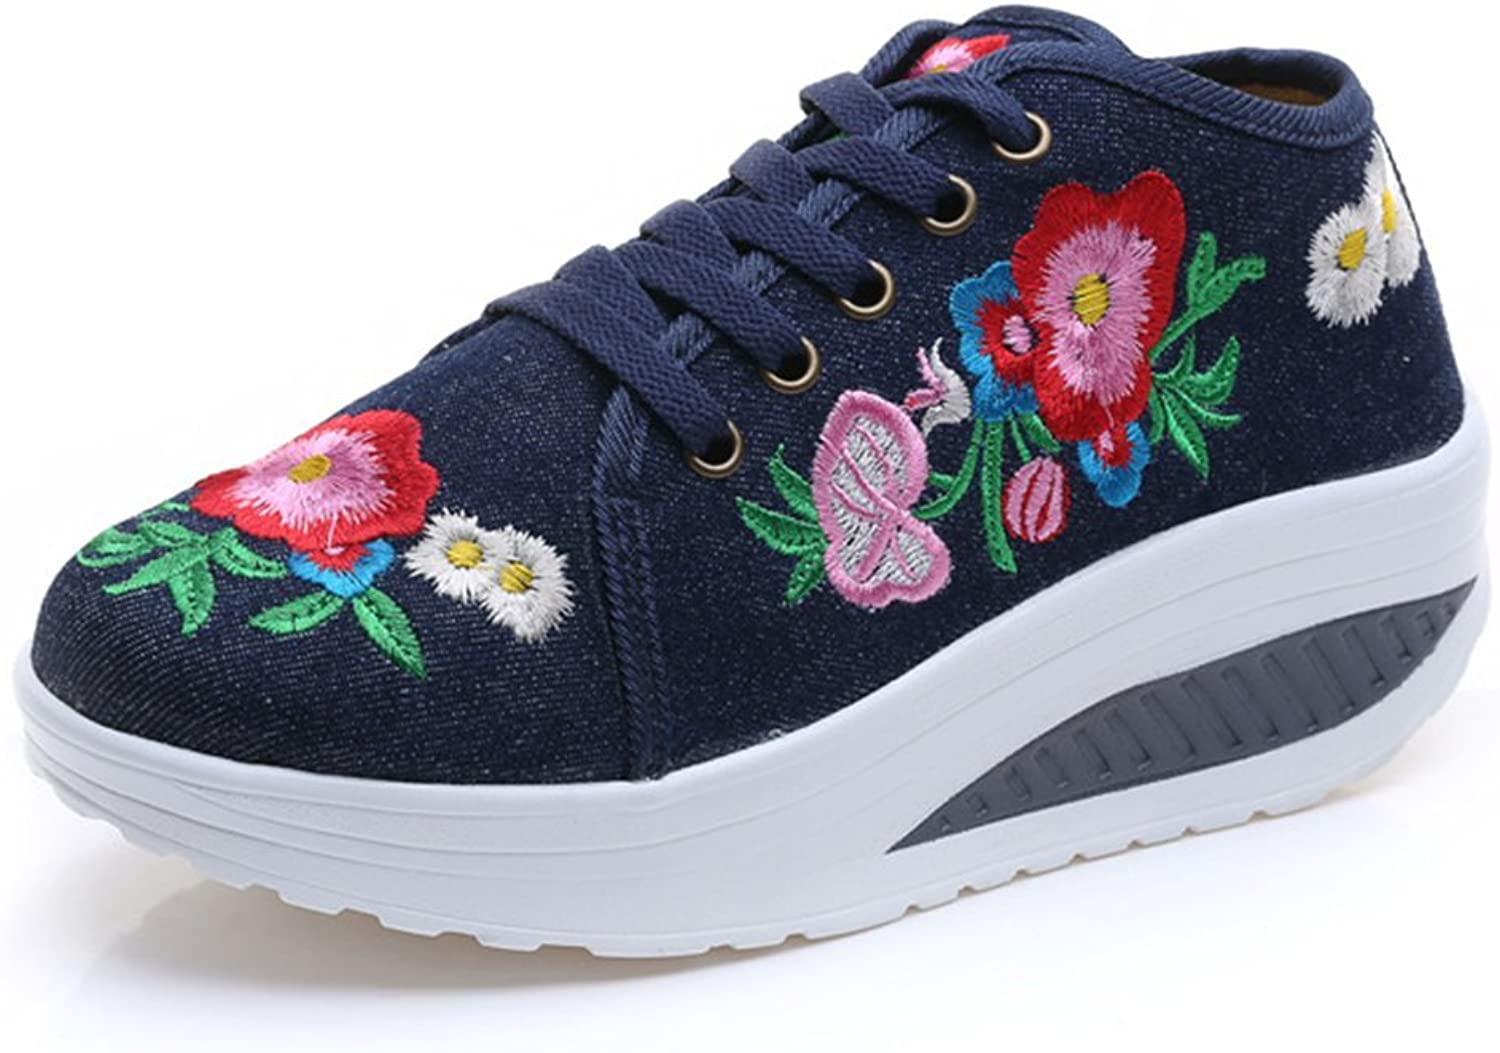 D-Sun Women Floral Embroidered Canvas Platform shoes Slip On Shape Up Toning Fitness Sneakers